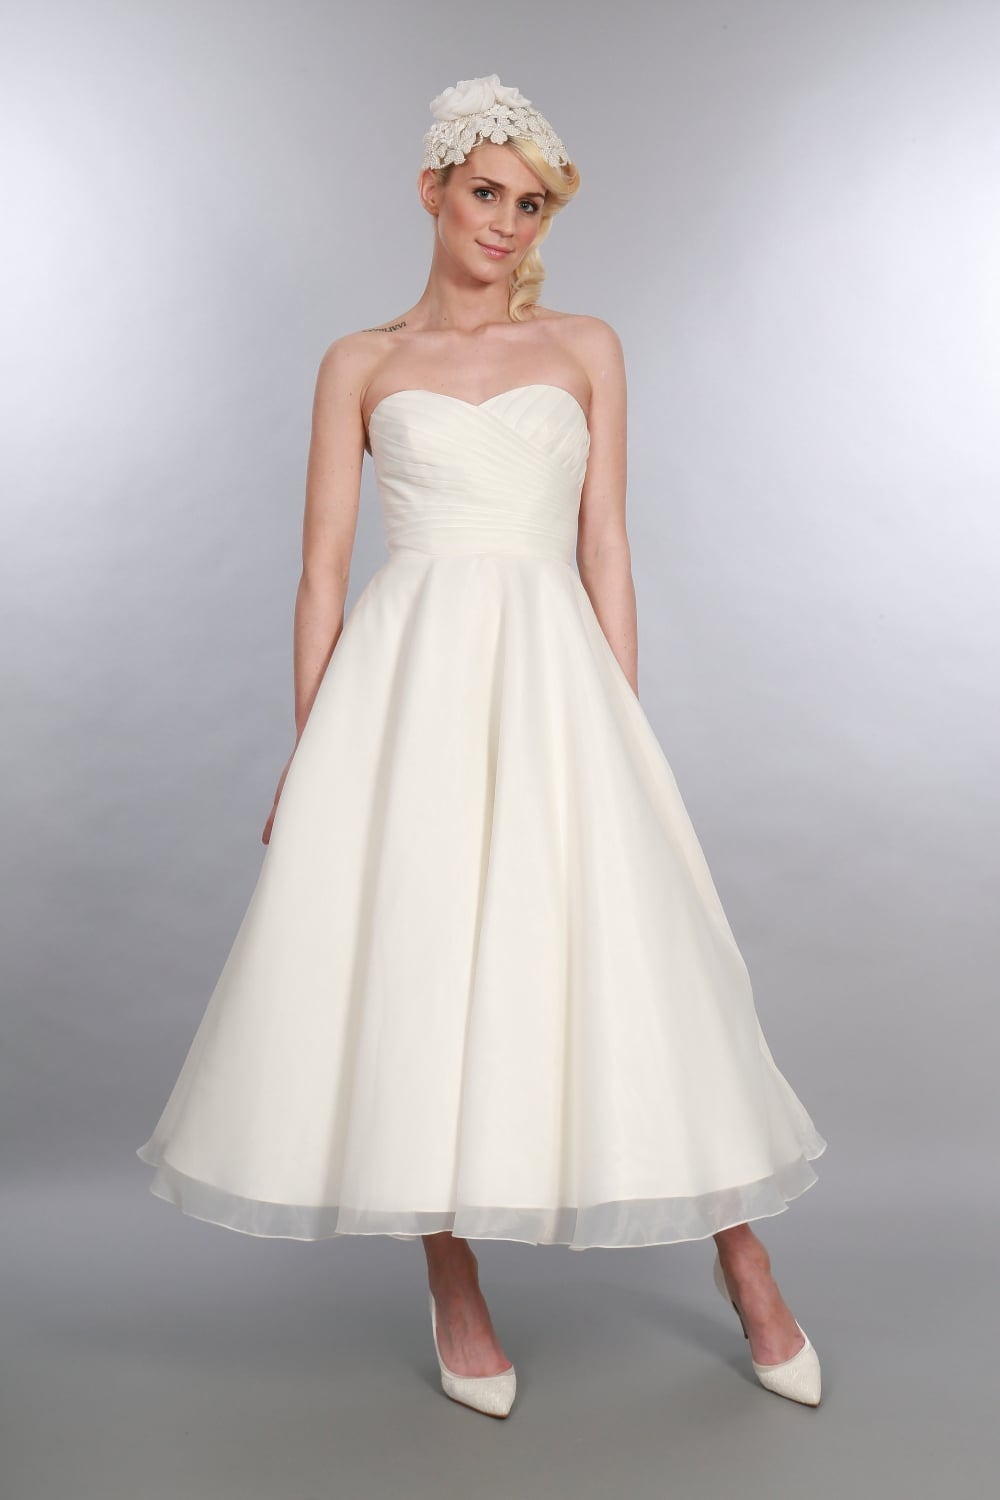 Elizabeth tea length 1950s inspired wedding gown by for Wedding dresses 1950s style